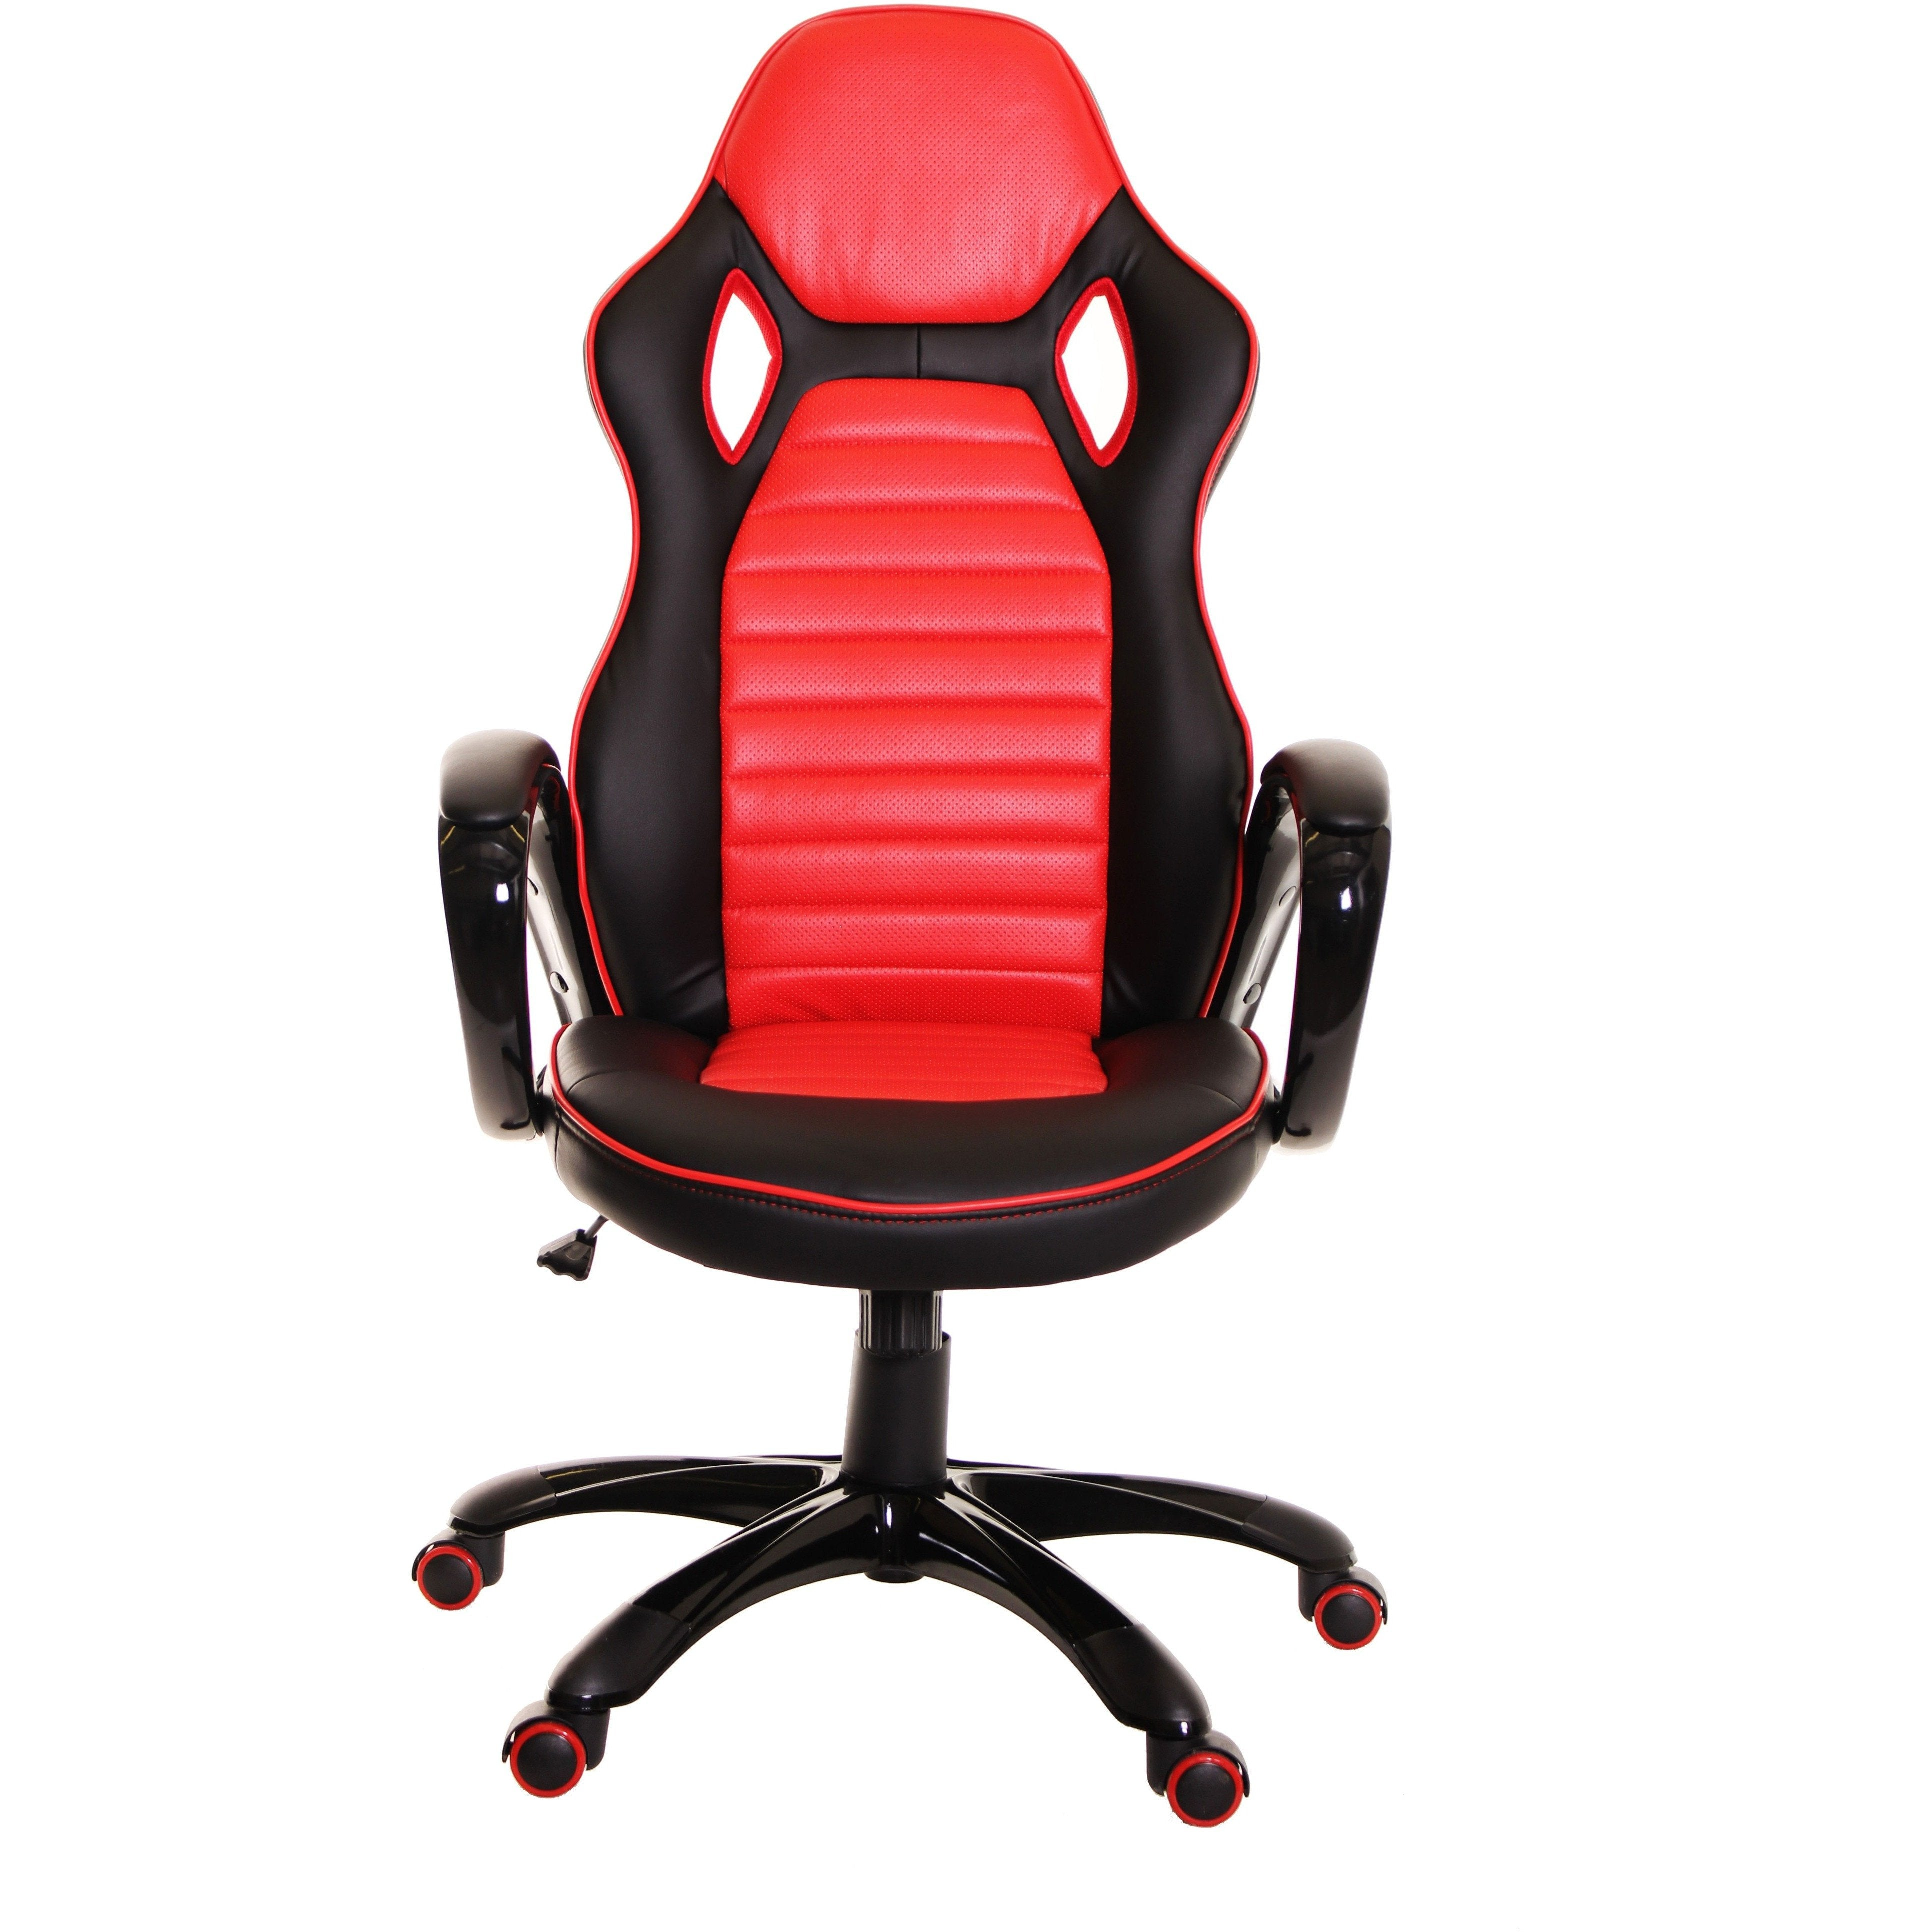 Race Car Style Office Chair Gaming Ergonomic Leather Chair by